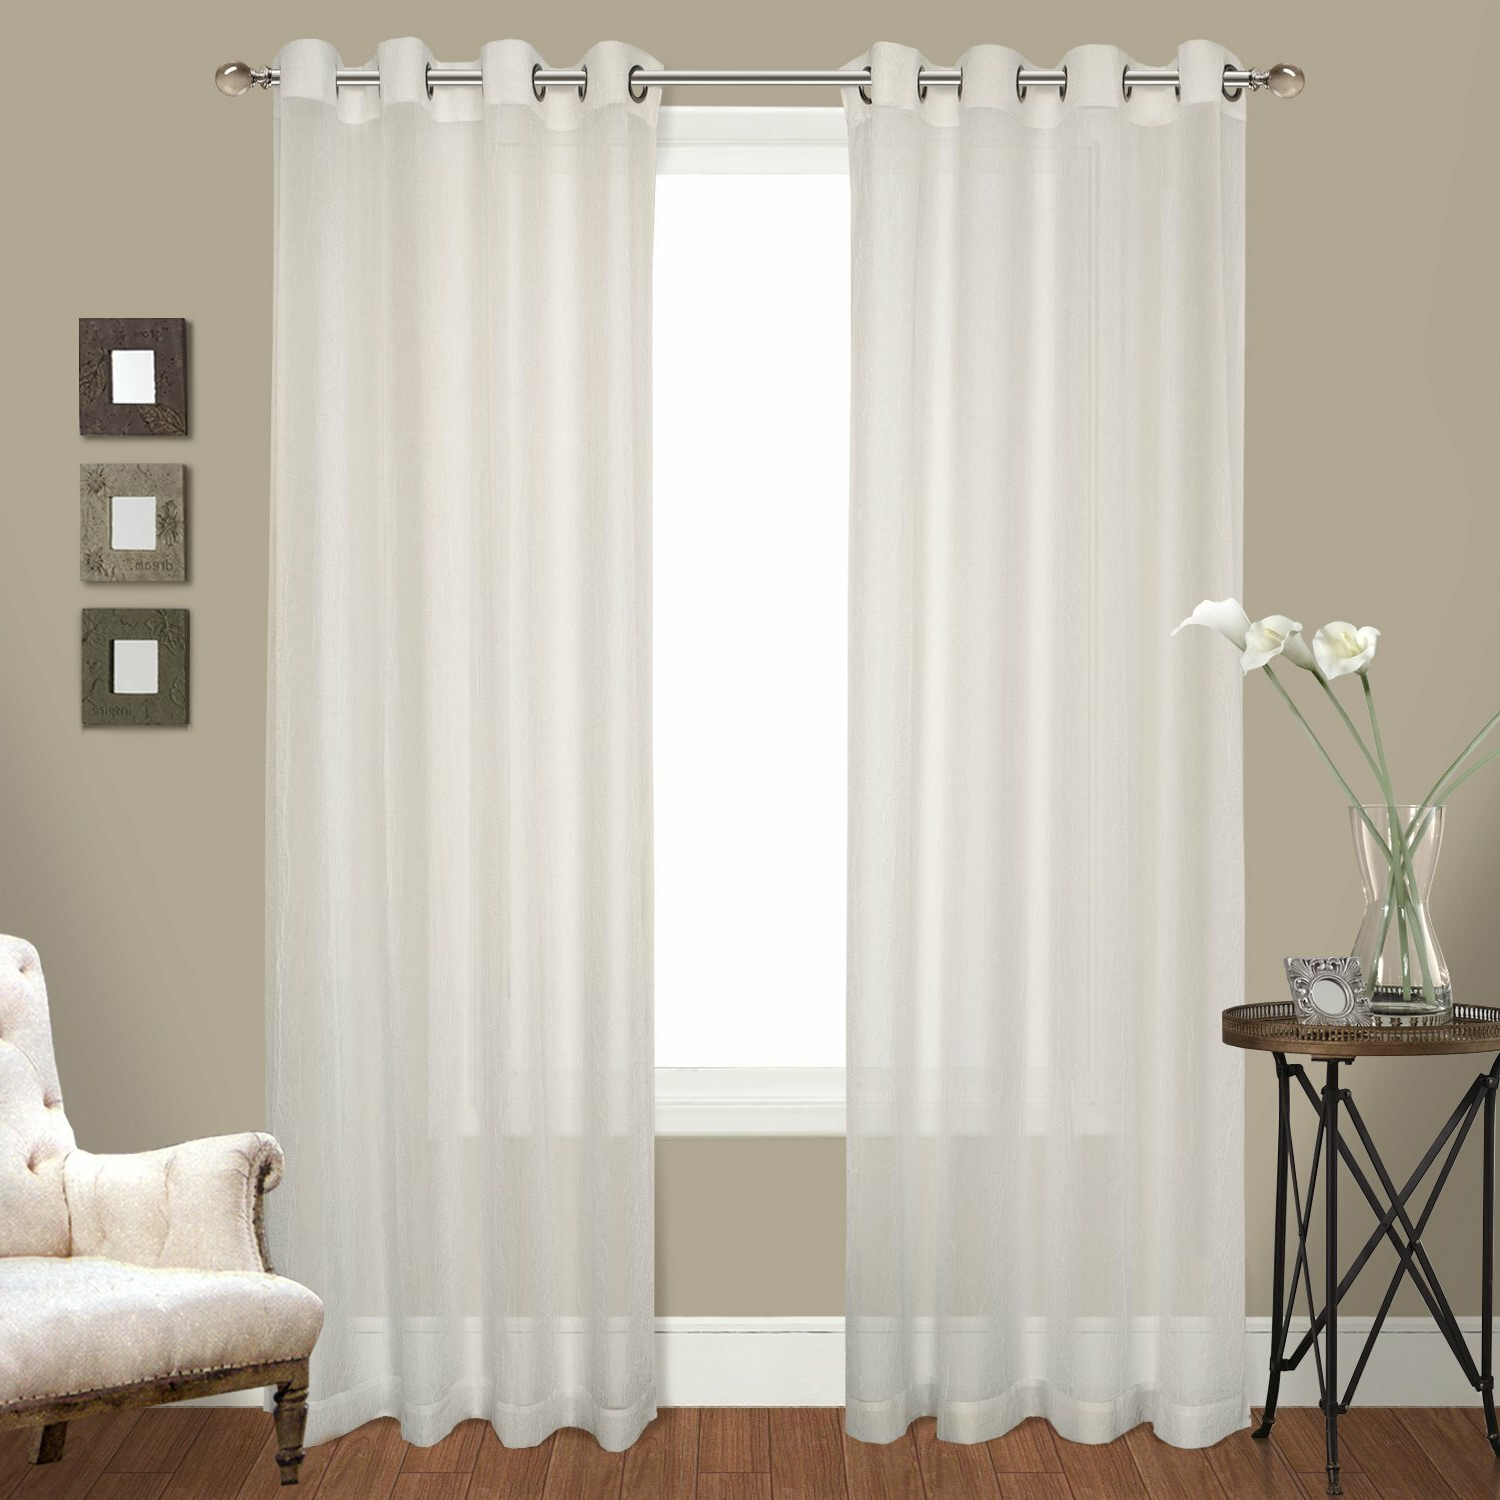 Famous Pairs To Go Victoria Voile Curtain Panel Pairs With Regard To Ortley Crushed Voile Solid Sheer Grommet Curtain Panel Pair (View 15 of 20)